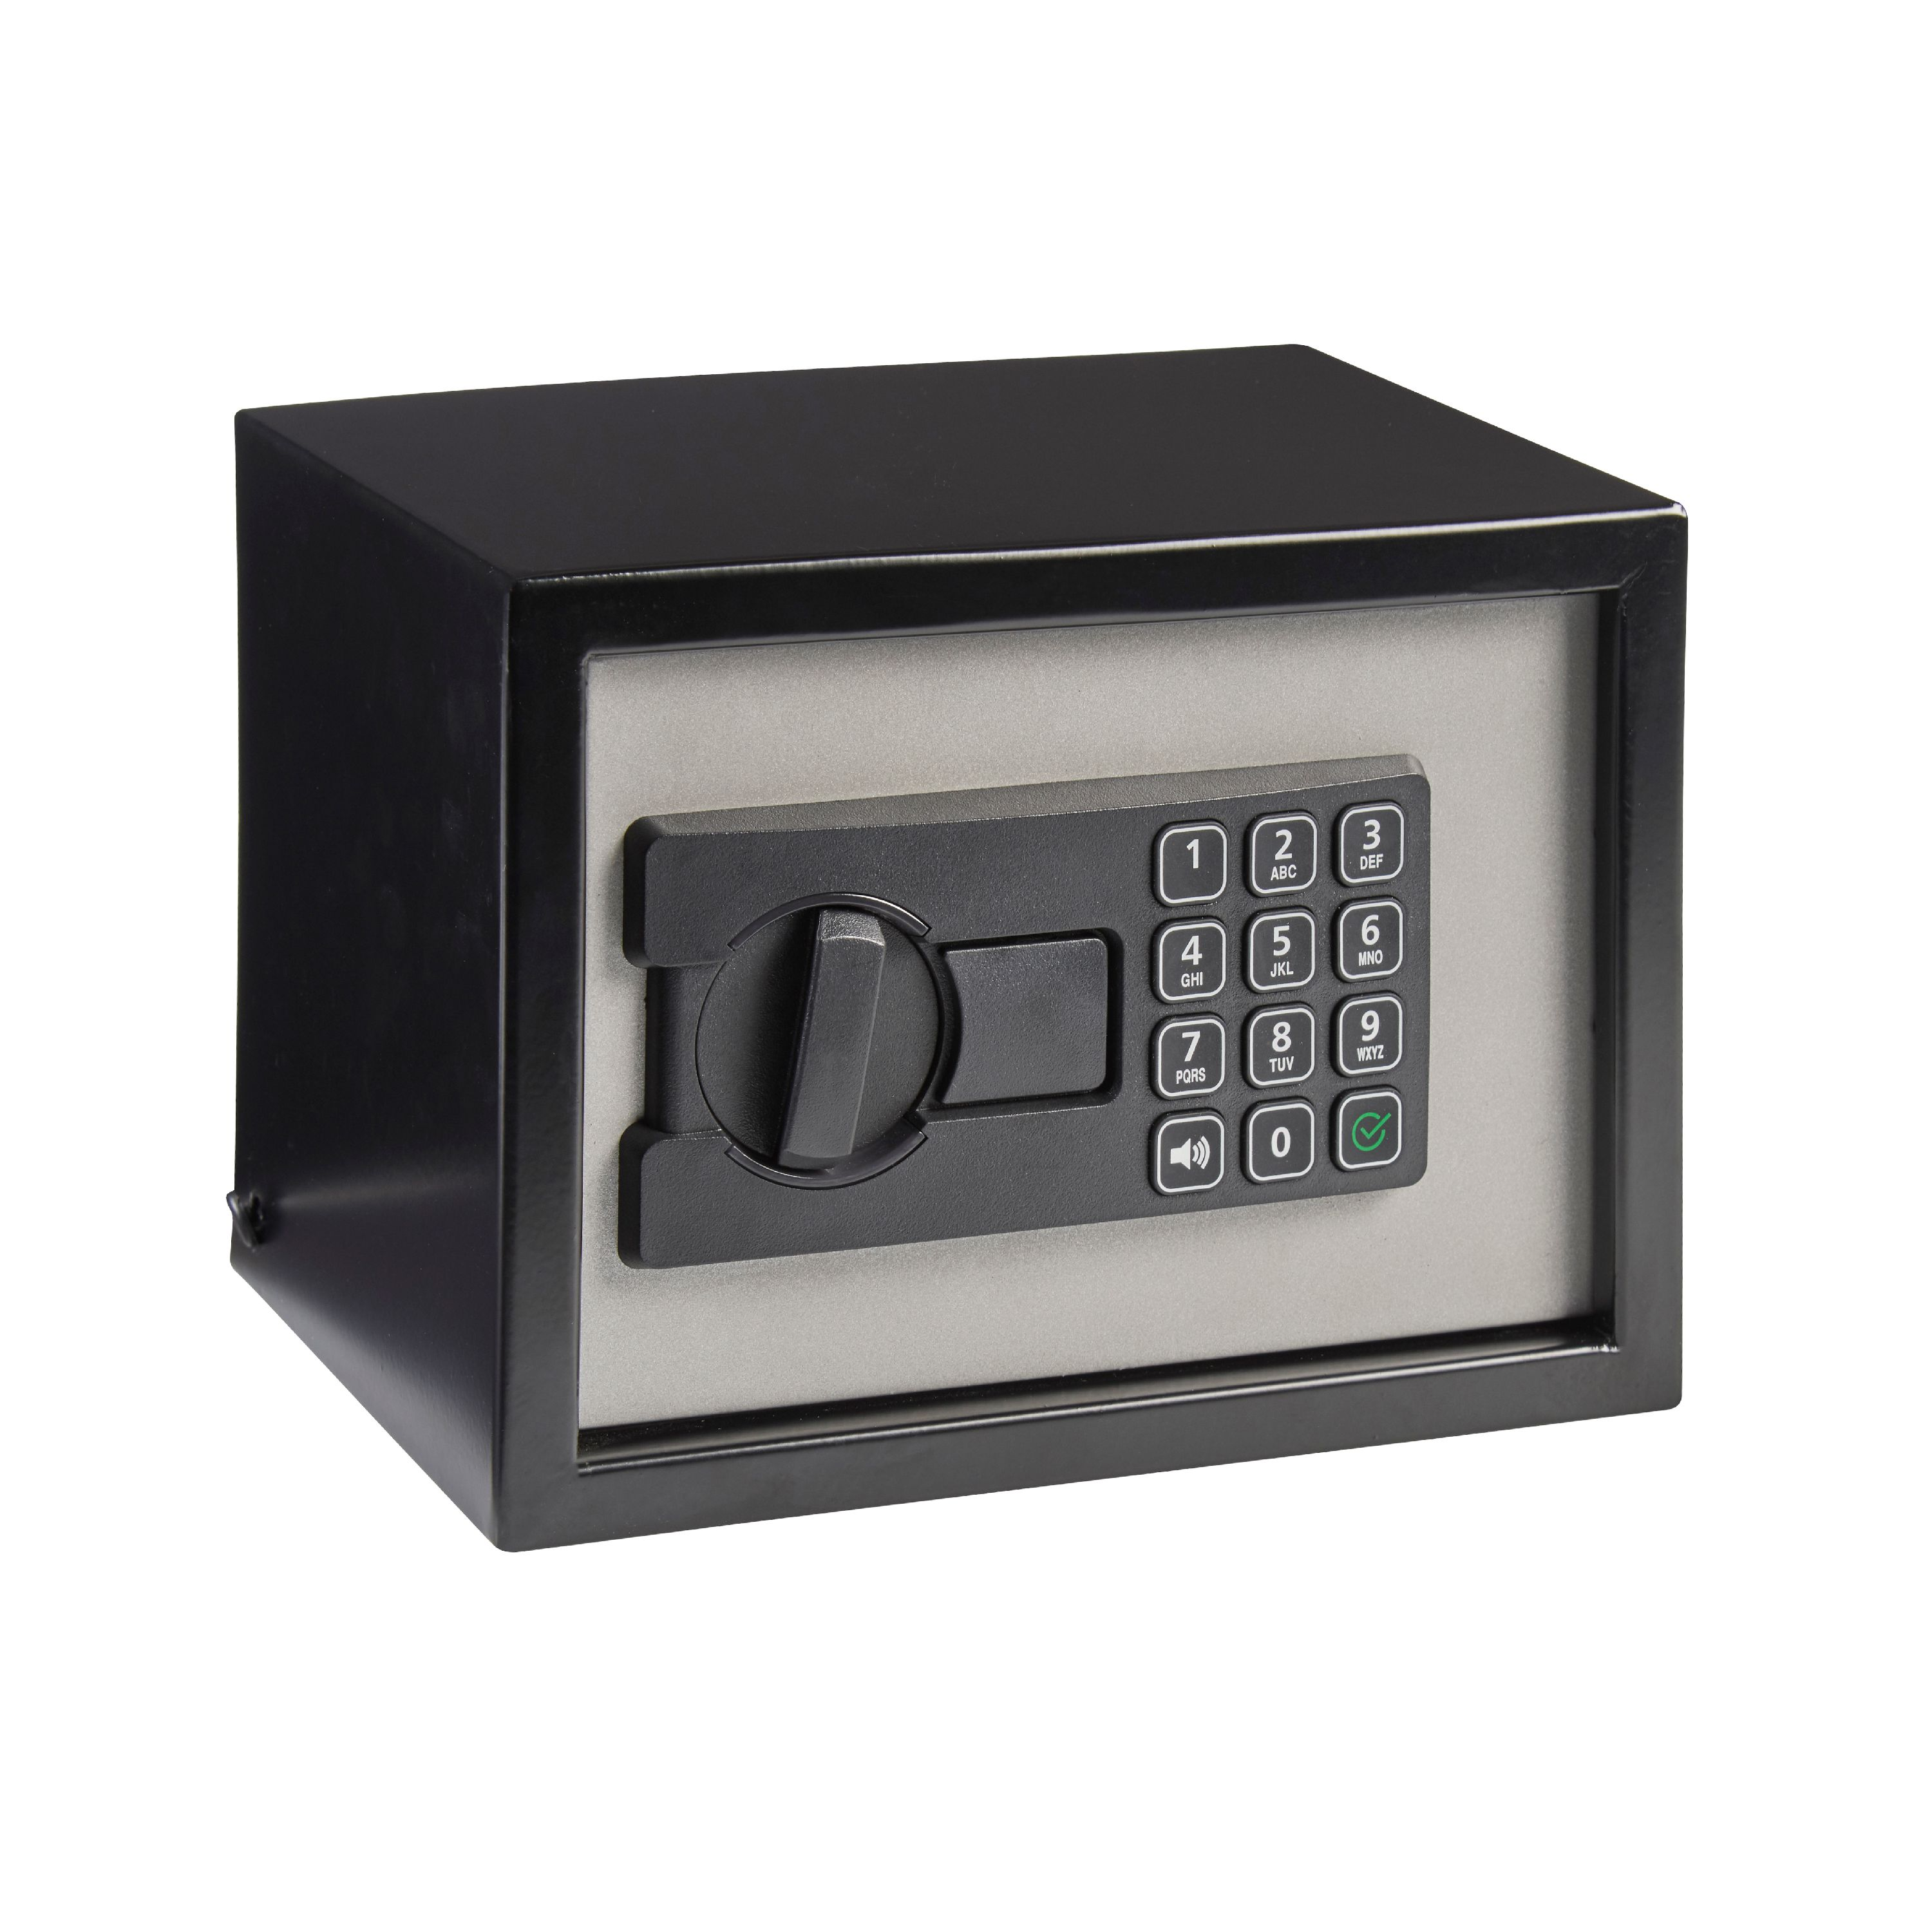 Pen + Gear Small Digital Safe at Walmart for $21.98 Online